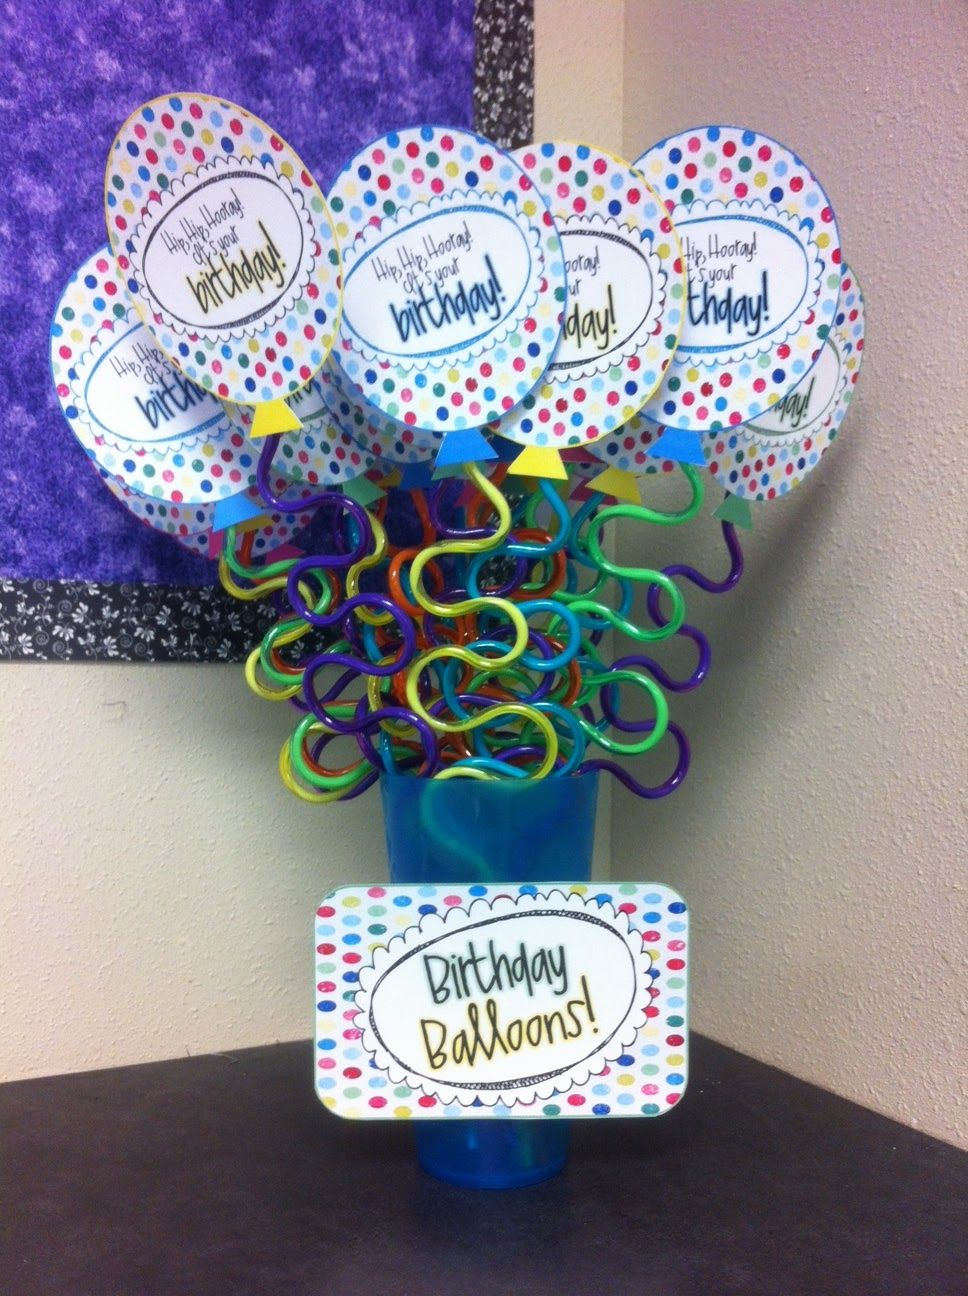 Adorable Way To Celebrate A Birthday For Student As Gift From You And Classroom Decor On Wall